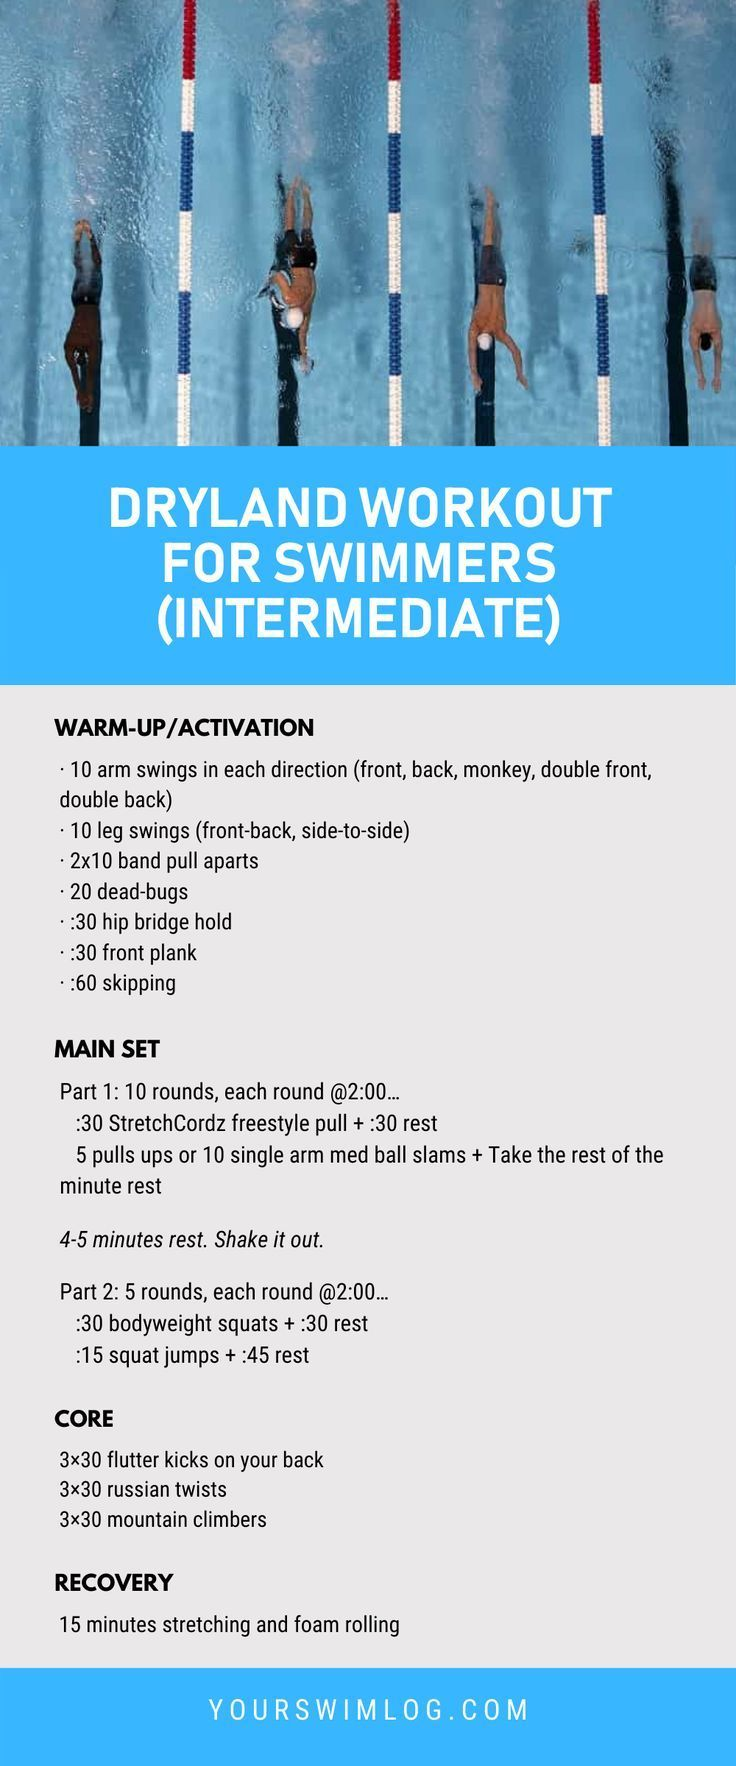 This dryland workout and training is designed with the intermediate swimmer in mind. The main set includes the use of StretchCordz, one of my favorite tools for developing swim-specific strength, and pairing the cords with squats, which will help you develop more power off your turns and push-offs.